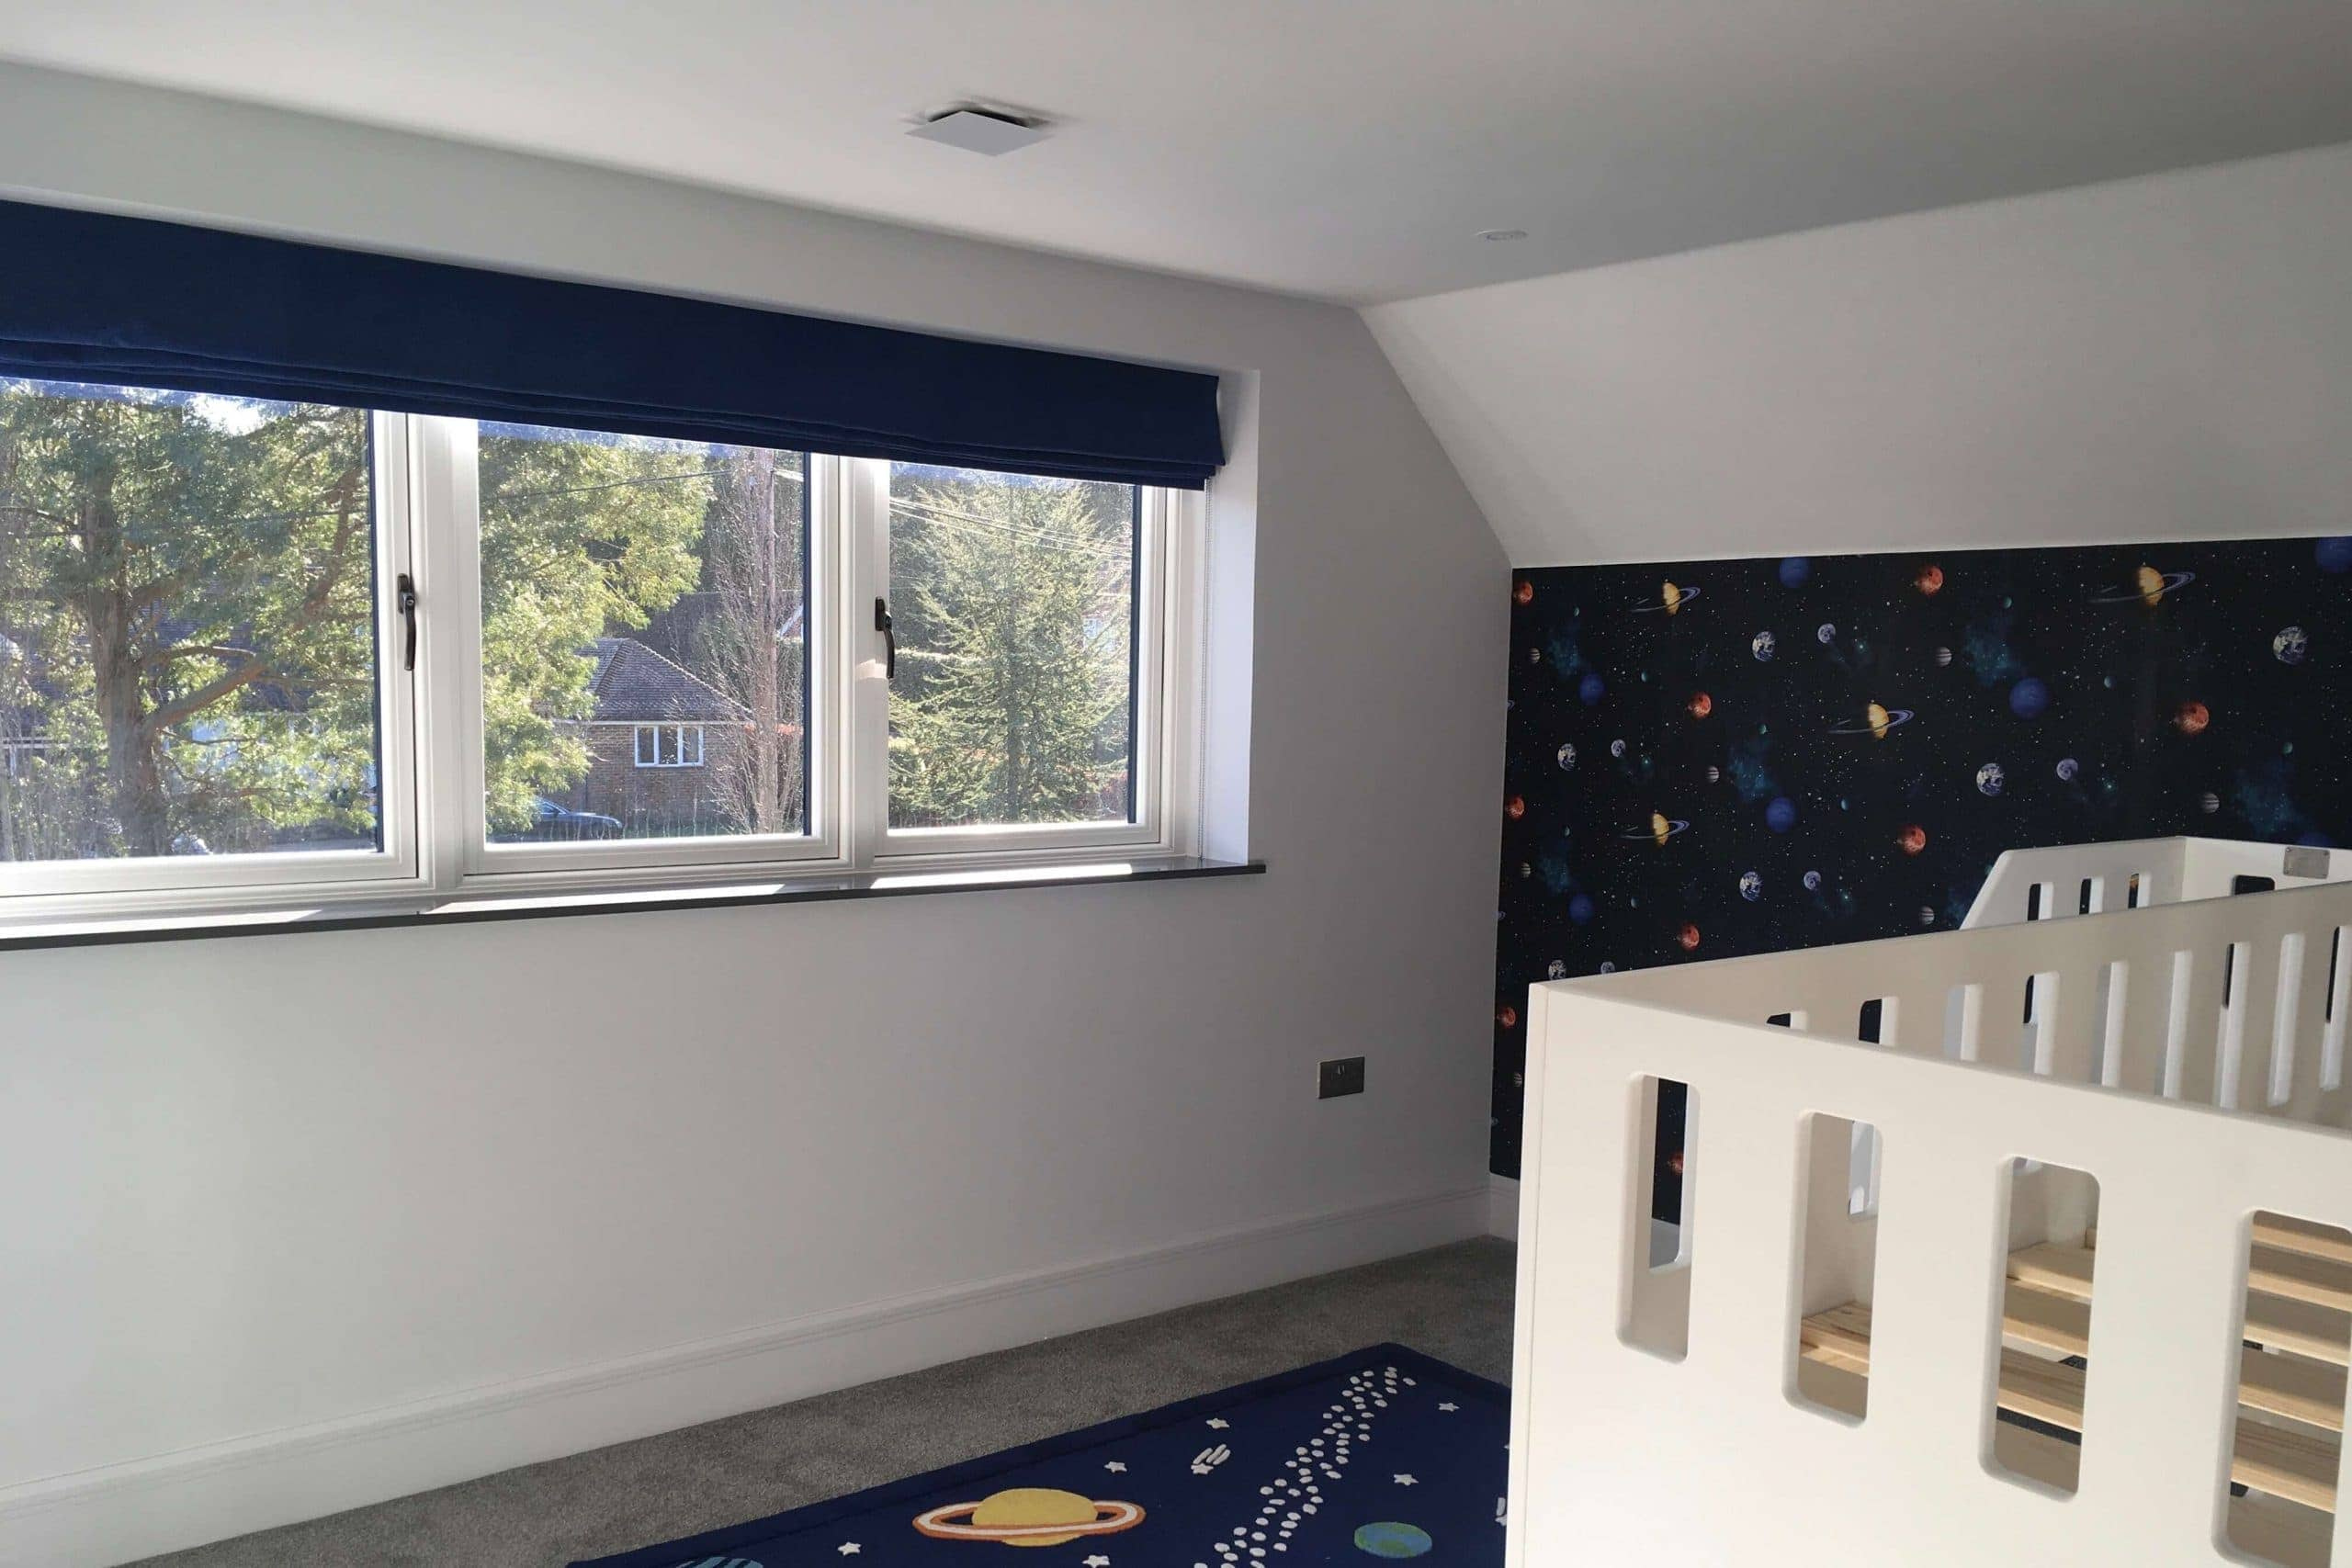 Air conditioning and MVHR system by SubCool FM in boys bedroom - fresh air and climate control through vent behind square on ceiling